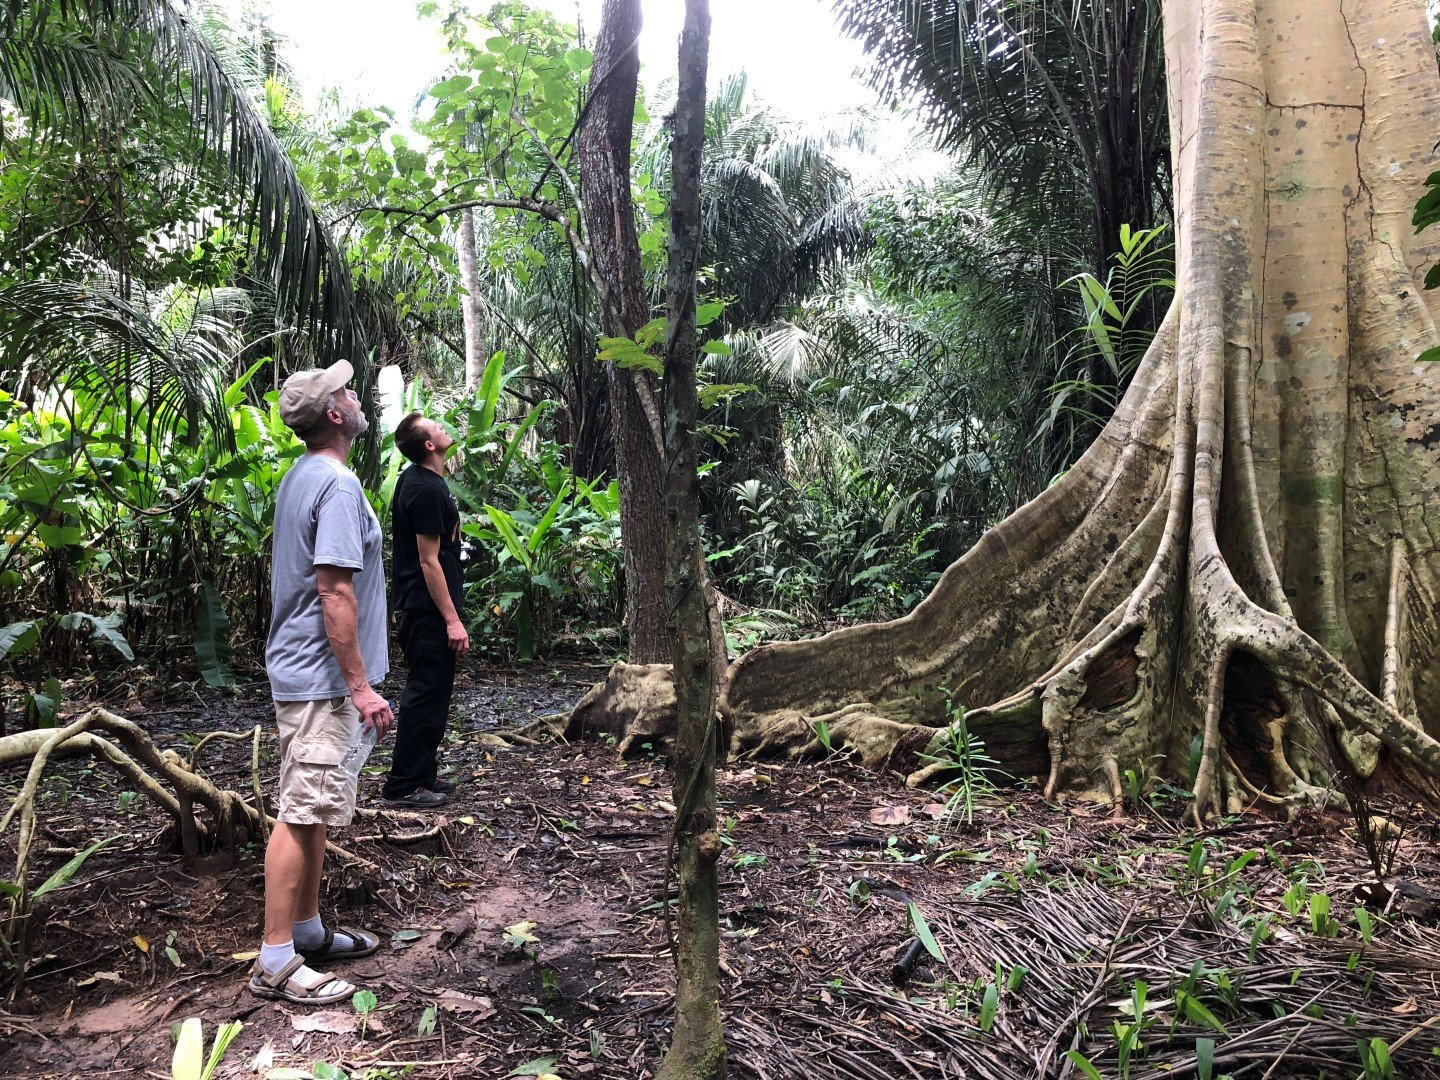 Hiking at Pisatahua is one of the jungle activities we offer.